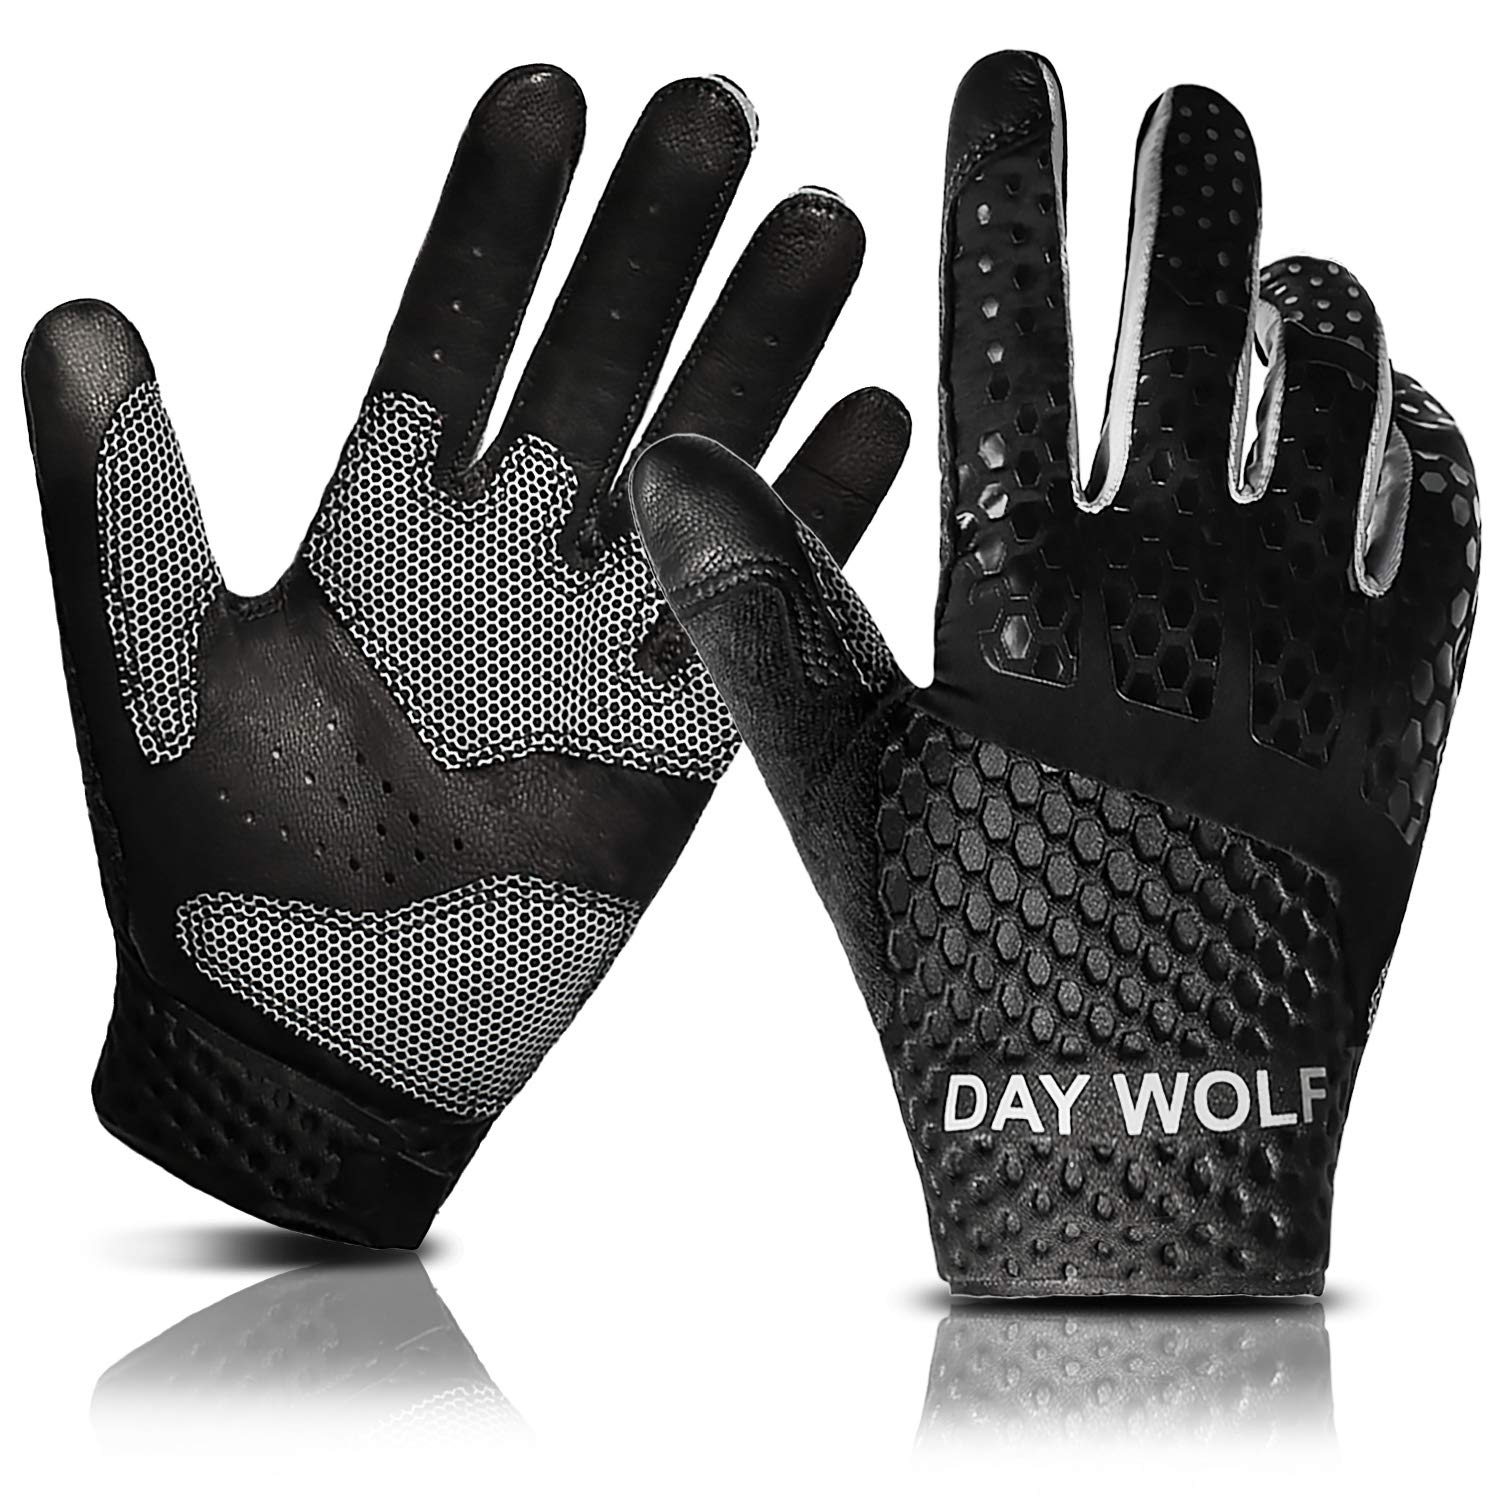 Full Finger Workout Gloves Gym Exercise Half Finger Fitness Gloves Heavy Weight Lifting Leather Palm Protection Strong Grip Padded Quality Breathable Comfort Gloves Size : M